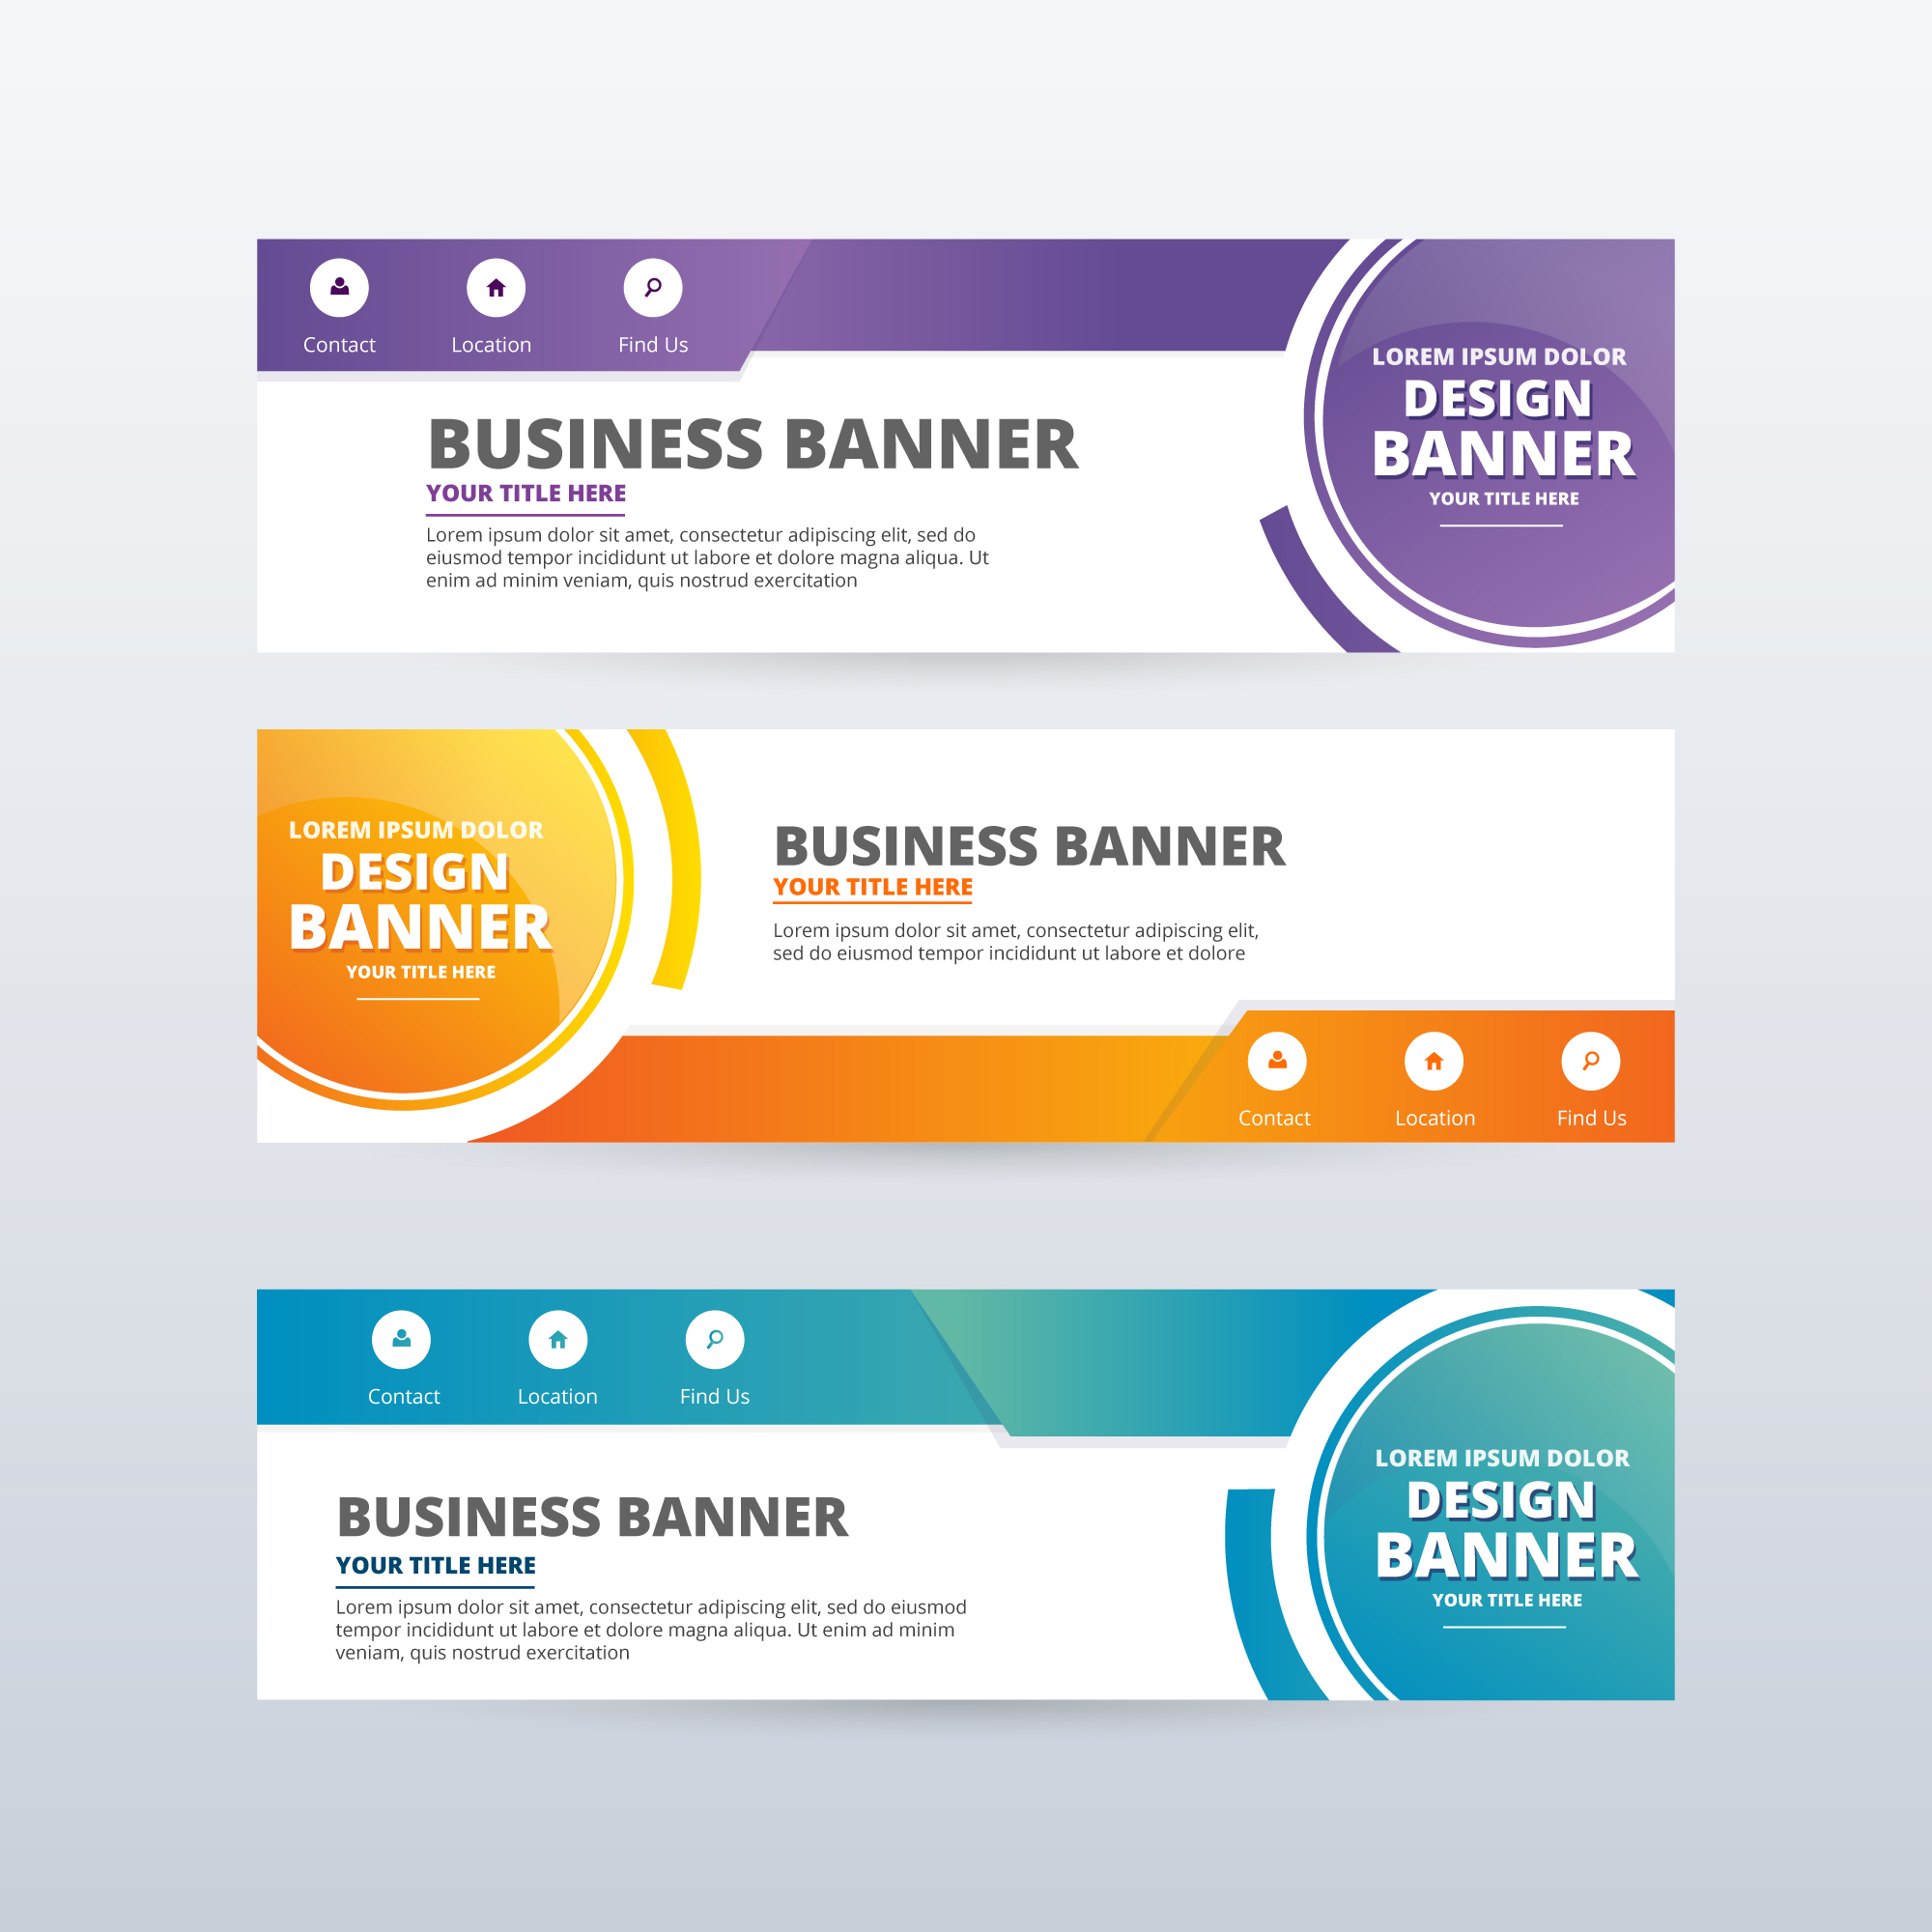 Design Creative Website Banner For $10  Seoclerks. Poster Printing. Lung Collapse Signs. Breaths Per Signs. Dance Studio Banners. Custom Bike Decals. Esports Logo. Maharashtrian Logo. Best Place To Order Custom Stickers